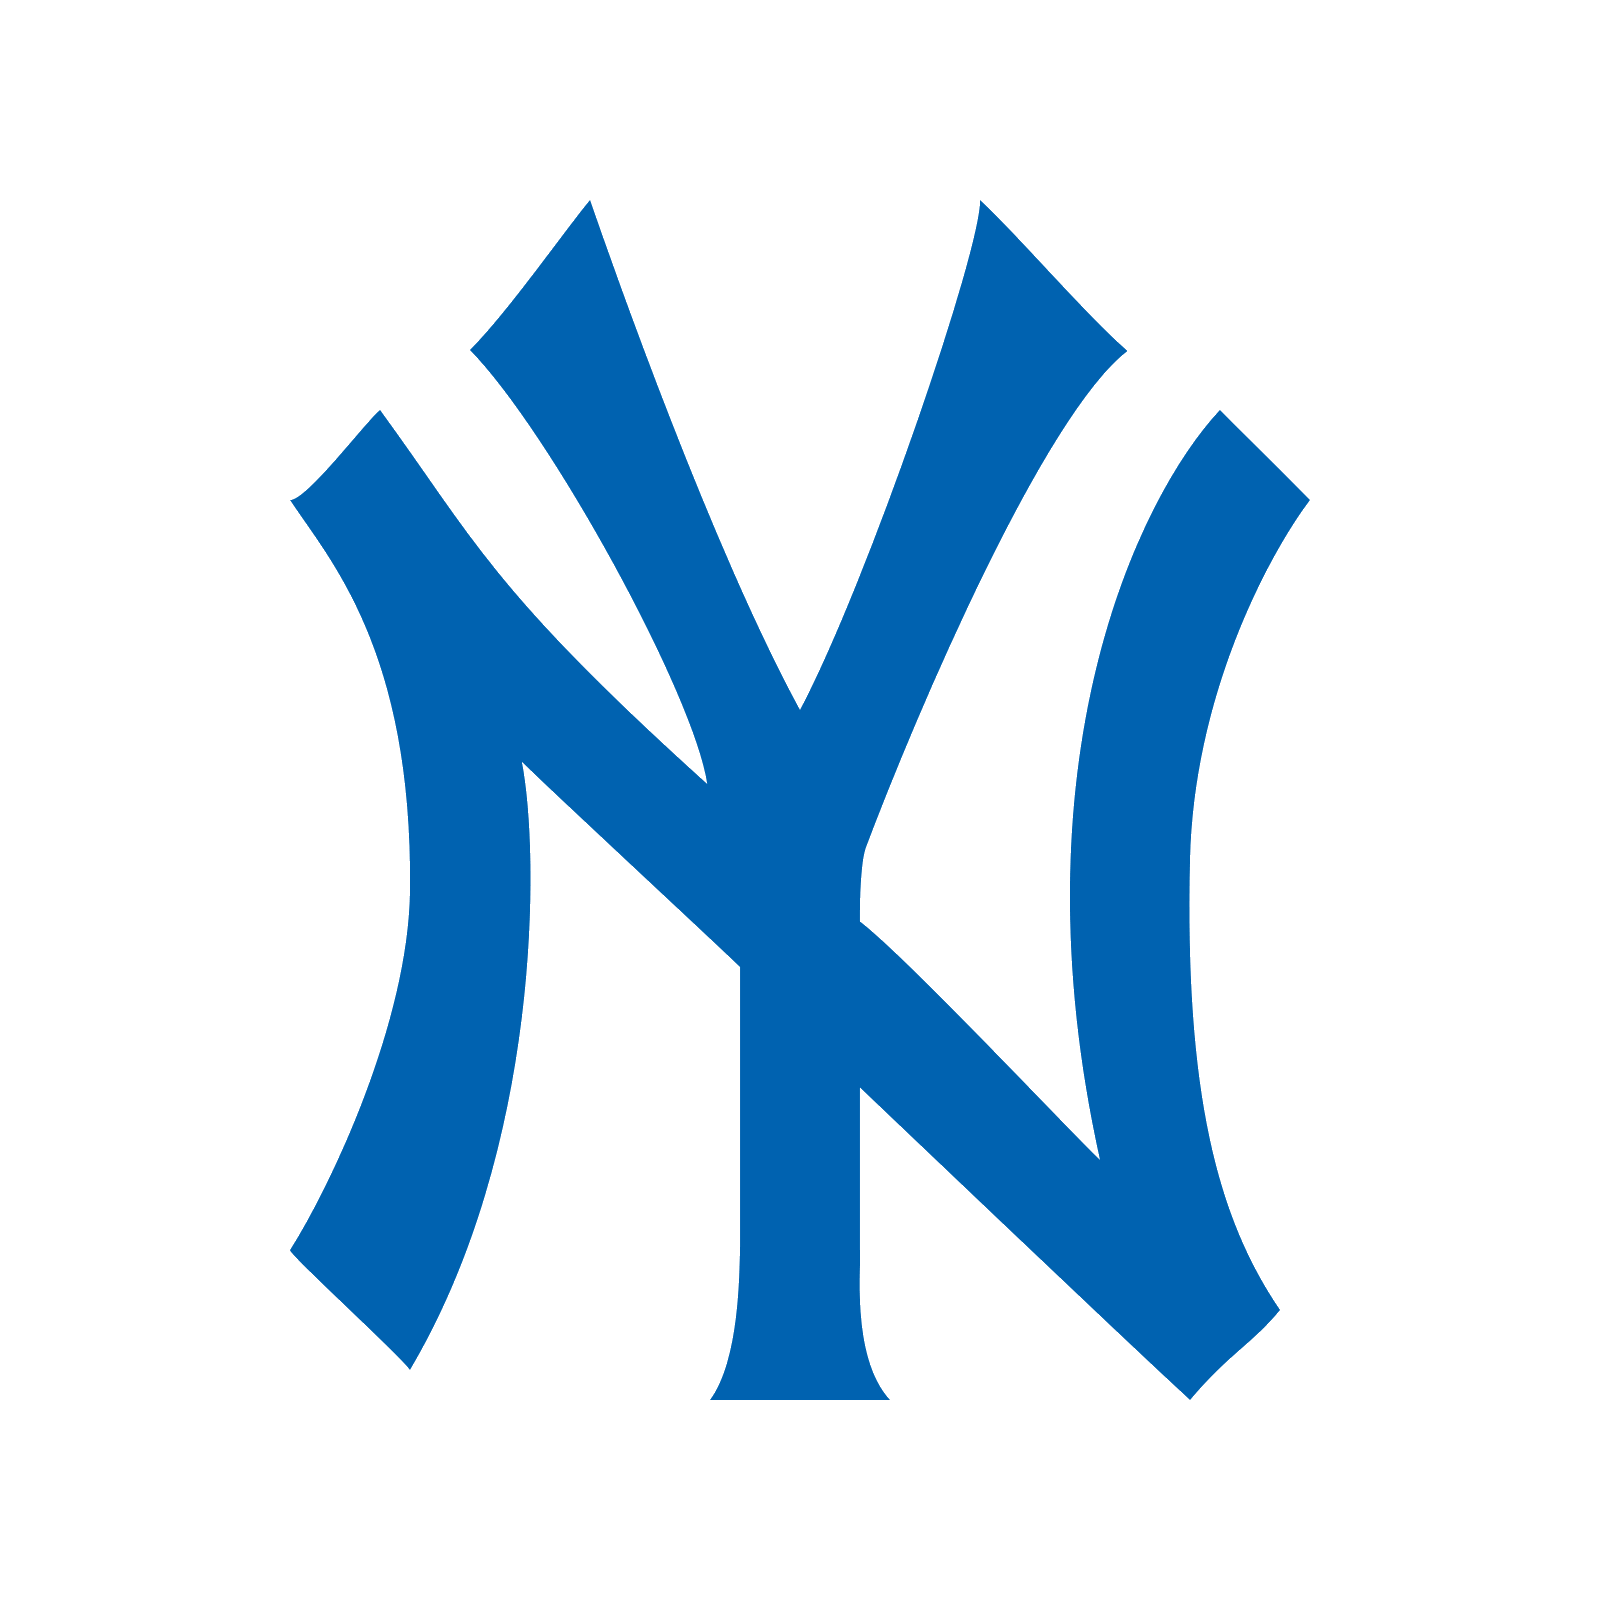 Yankees vector name. New york icon free